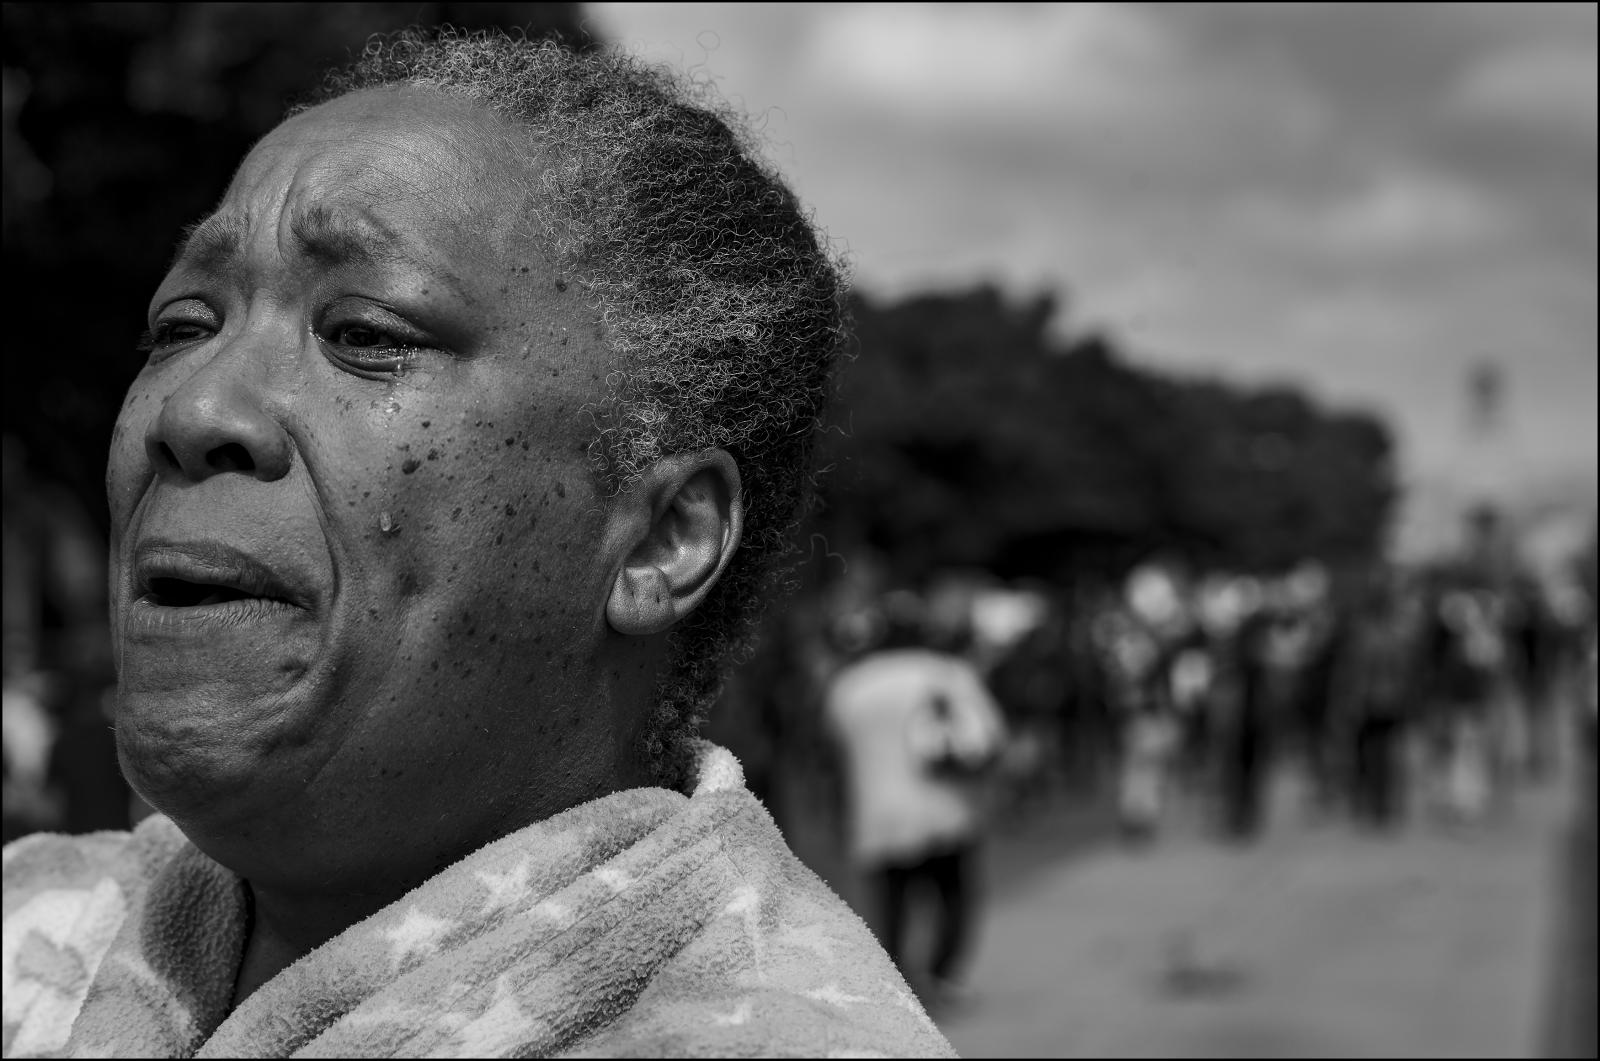 Teresa A. Pitts breaks into tears as a Anti-Police violence march passes her home on San Vicente Blvd & Carmona in Mid-Wilshire area of Los Angeles, CA. 06/06/2020